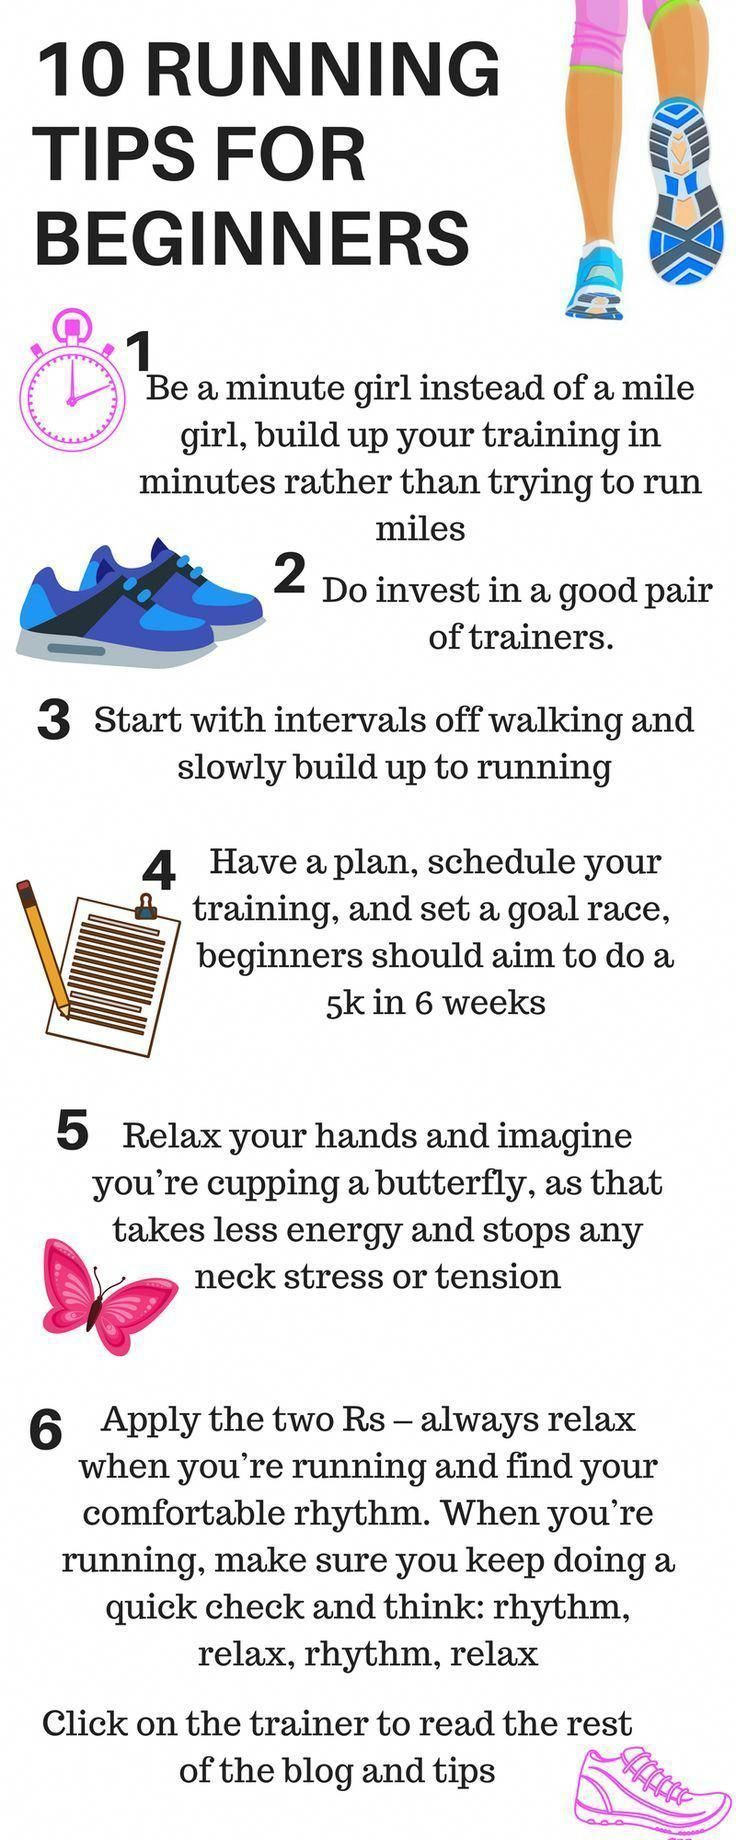 10 TOP TIPS FOR BEGINNERS TO RUNNING. These running tips will help take a beginner to running to easily be able to run a 5k. #pilatescourses 10 TOP TIPS FOR BEGINNERS TO RUNNING. These running tips will help take a beginner to running to easily be able to run a 5k. #pilatescourses 10 TOP TIPS FOR BEGINNERS TO RUNNING. These running tips will help take a beginner to running to easily be able to run a 5k. #pilatescourses 10 TOP TIPS FOR BEGINNERS TO RUNNING. These running tips will help take a beg #pilatescourses